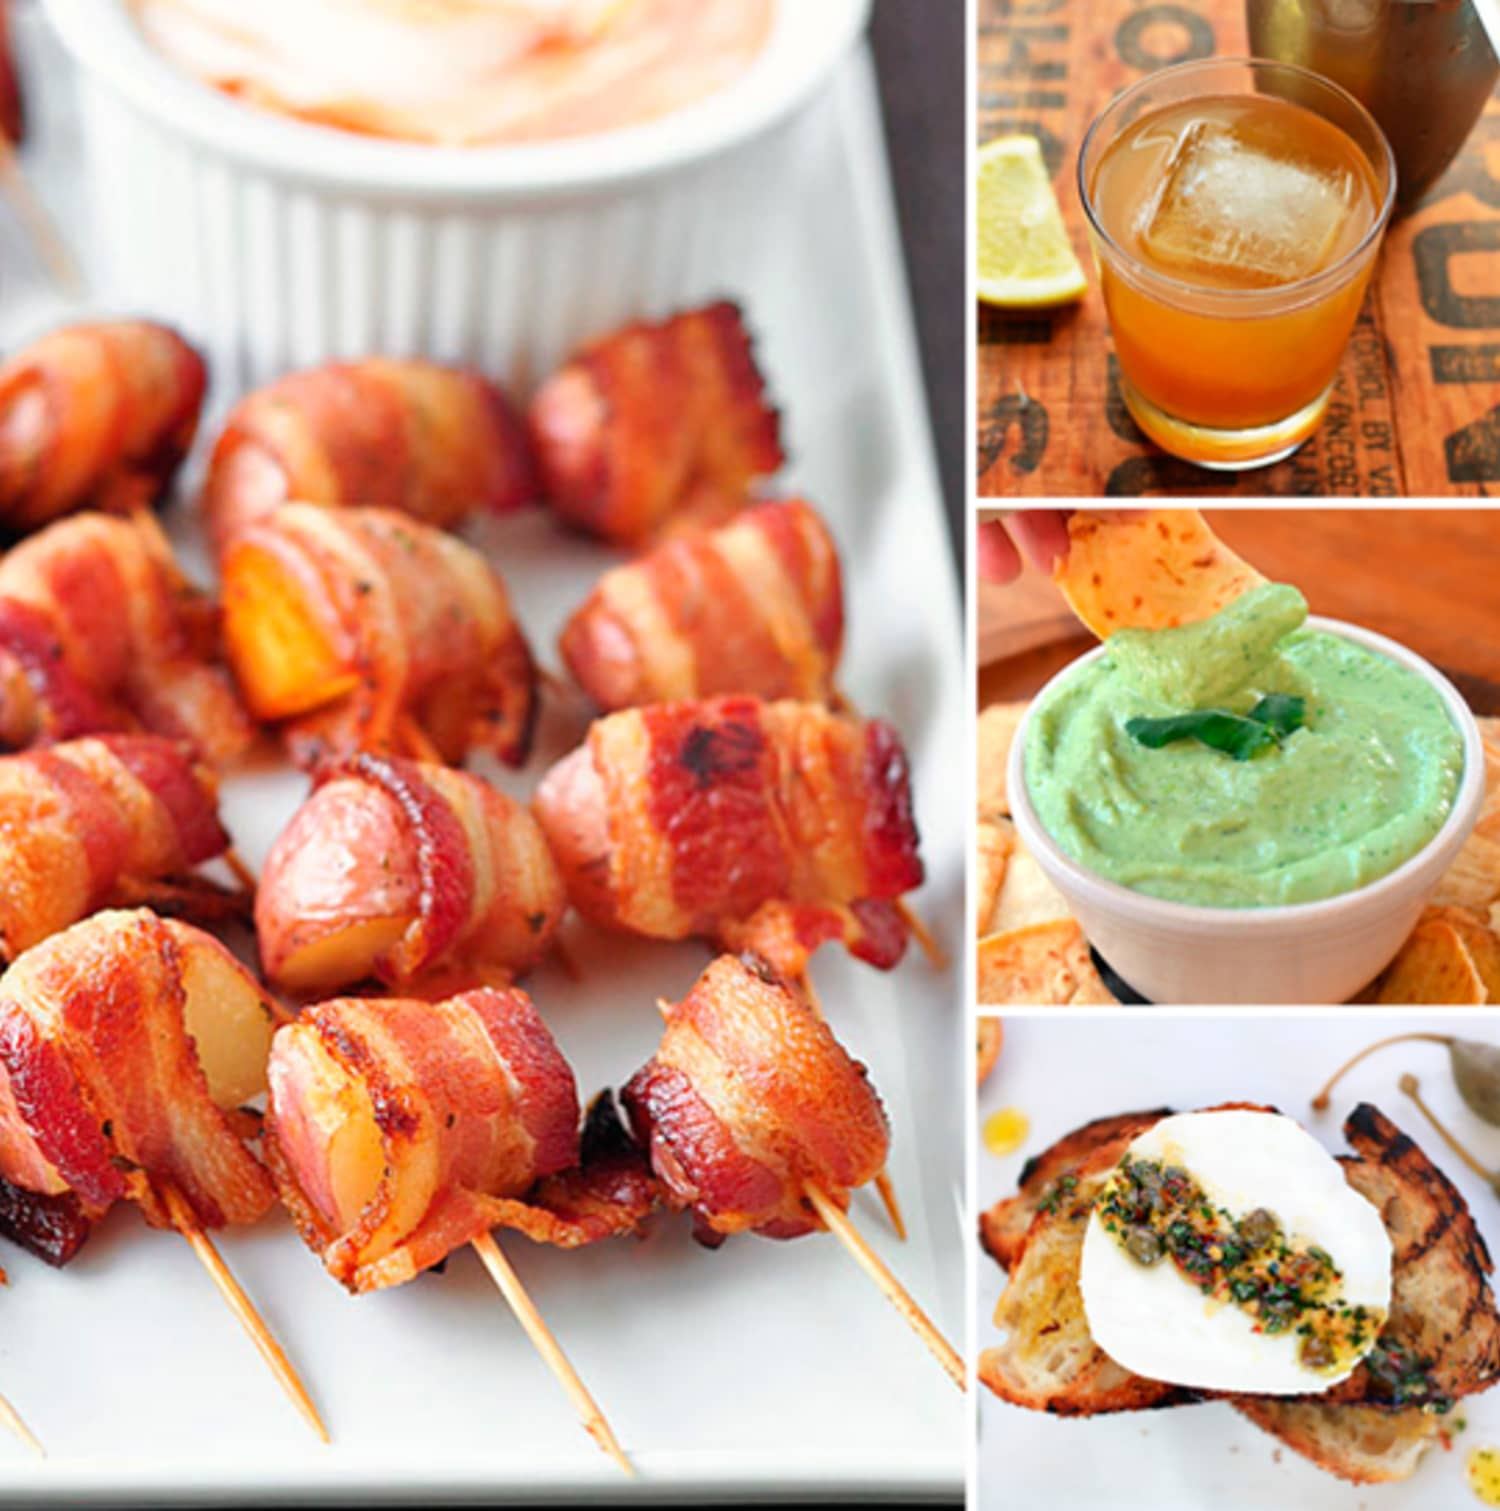 Nibbles & Sips: No-Fuss Menu for a Fancy Cocktail Party | Kitchn